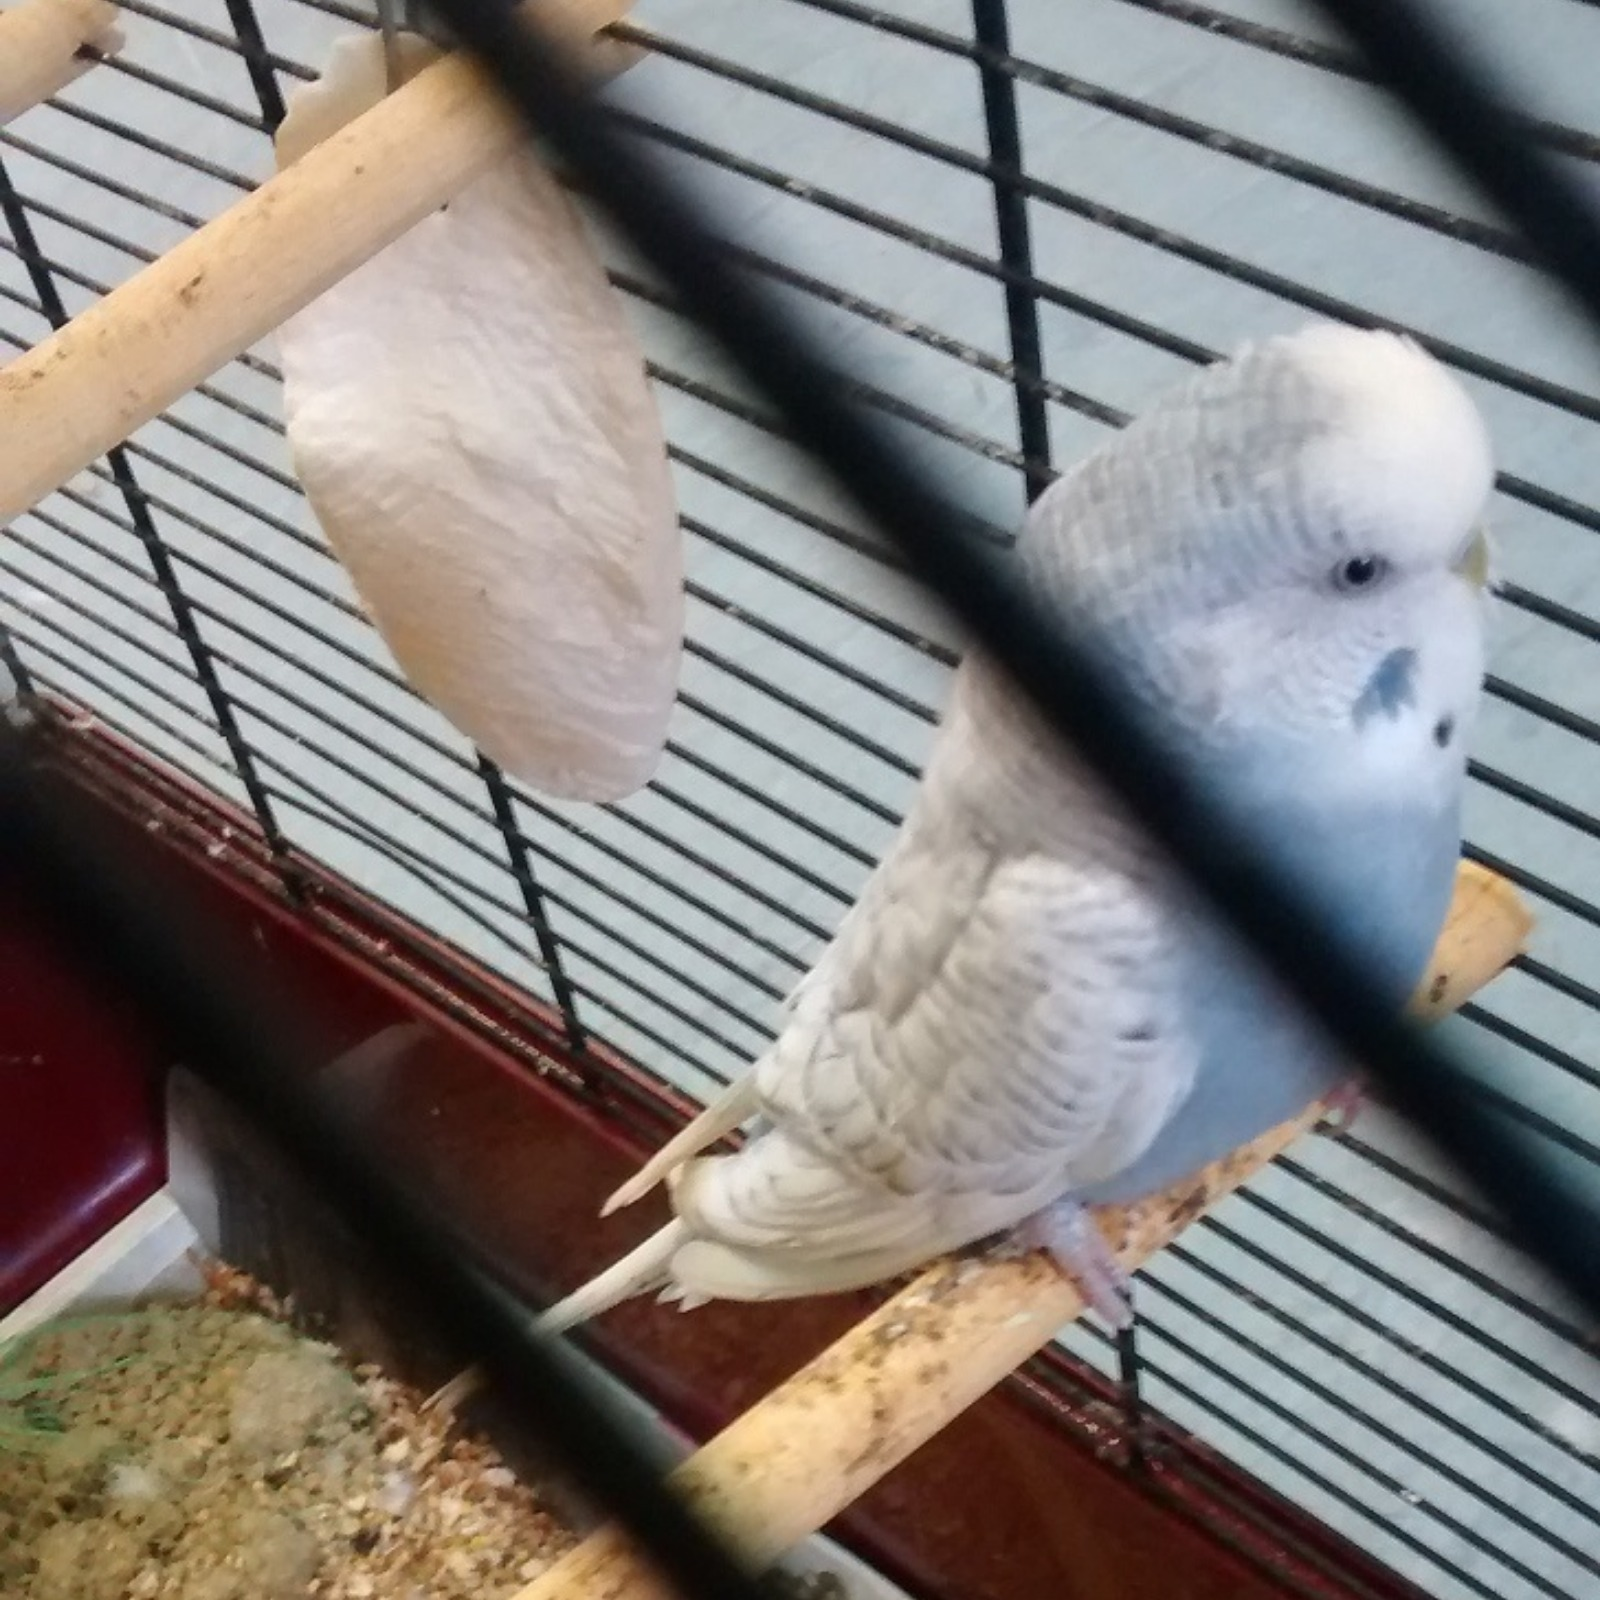 Budgie Found 'collapsed' In Cage After Being Abandoned In